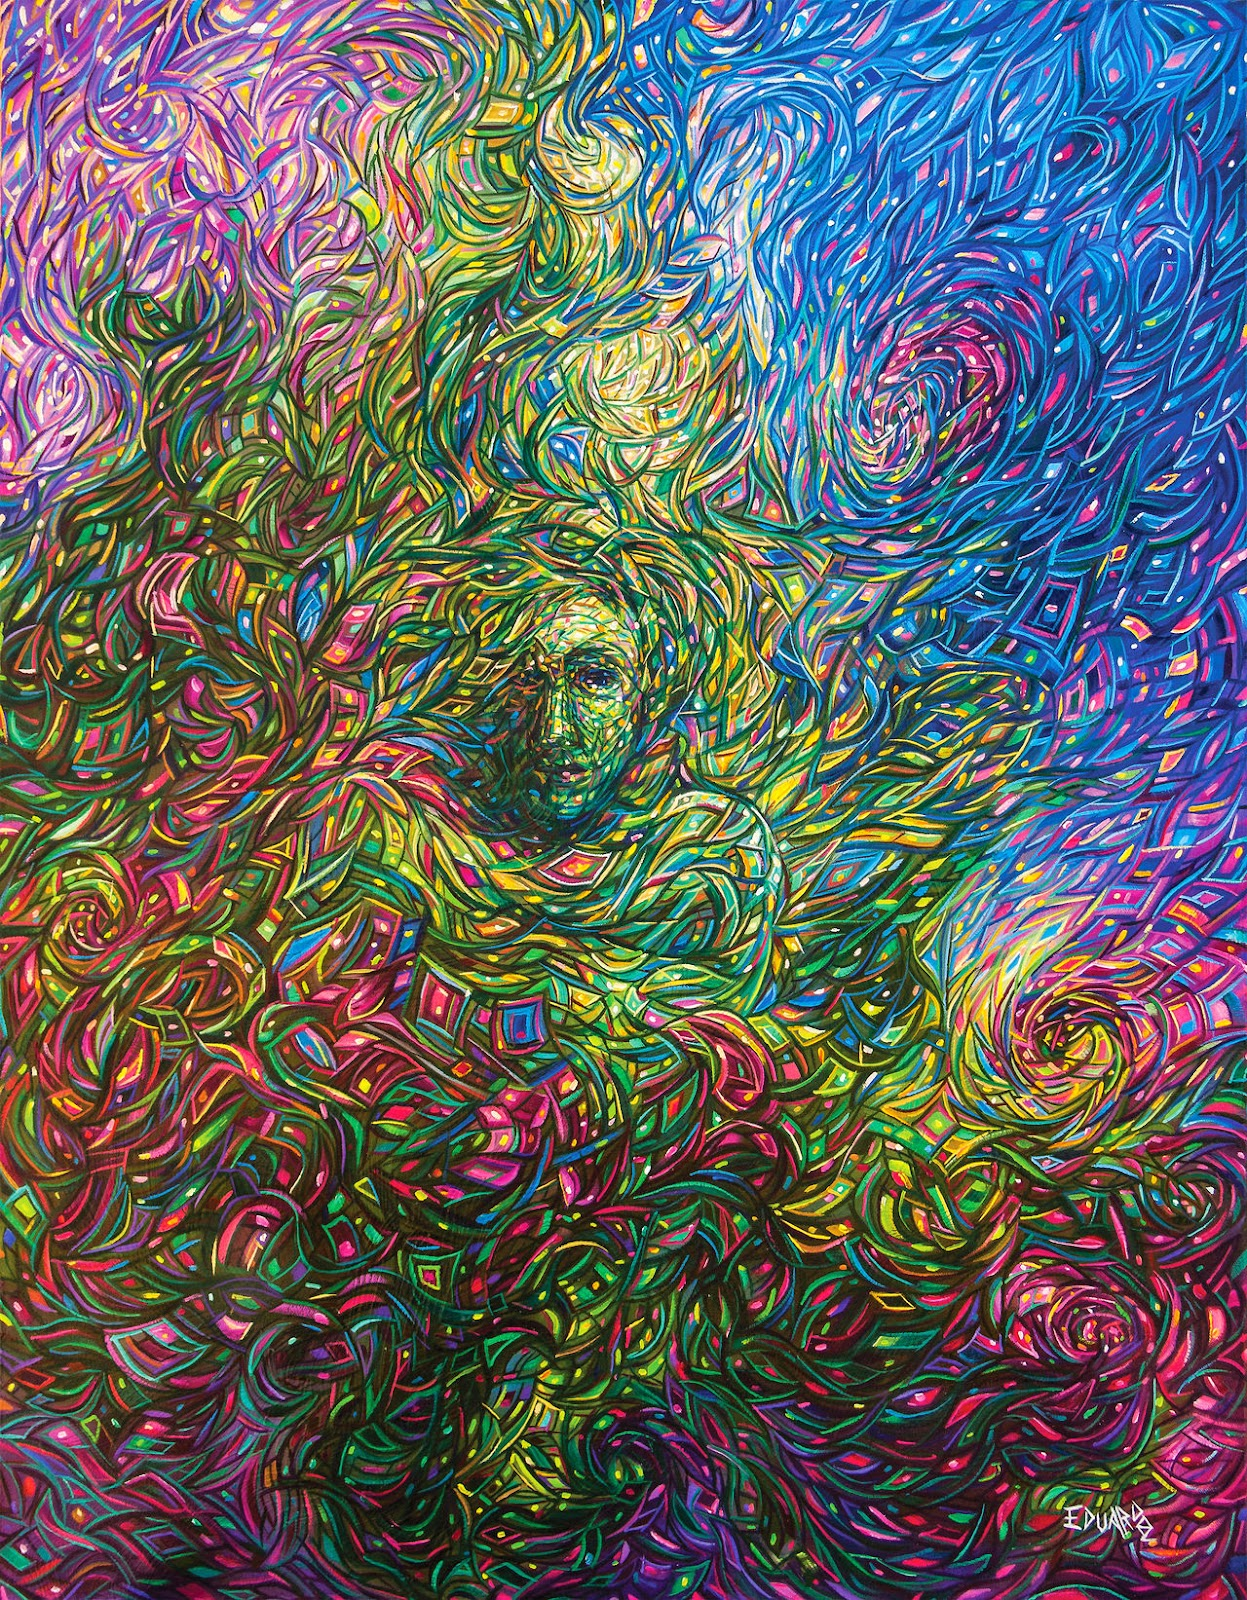 15-States-of-Consciousness-Eduardo-R-Calzado-Paintings-in-Swirls-of-Colour-www-designstack-co